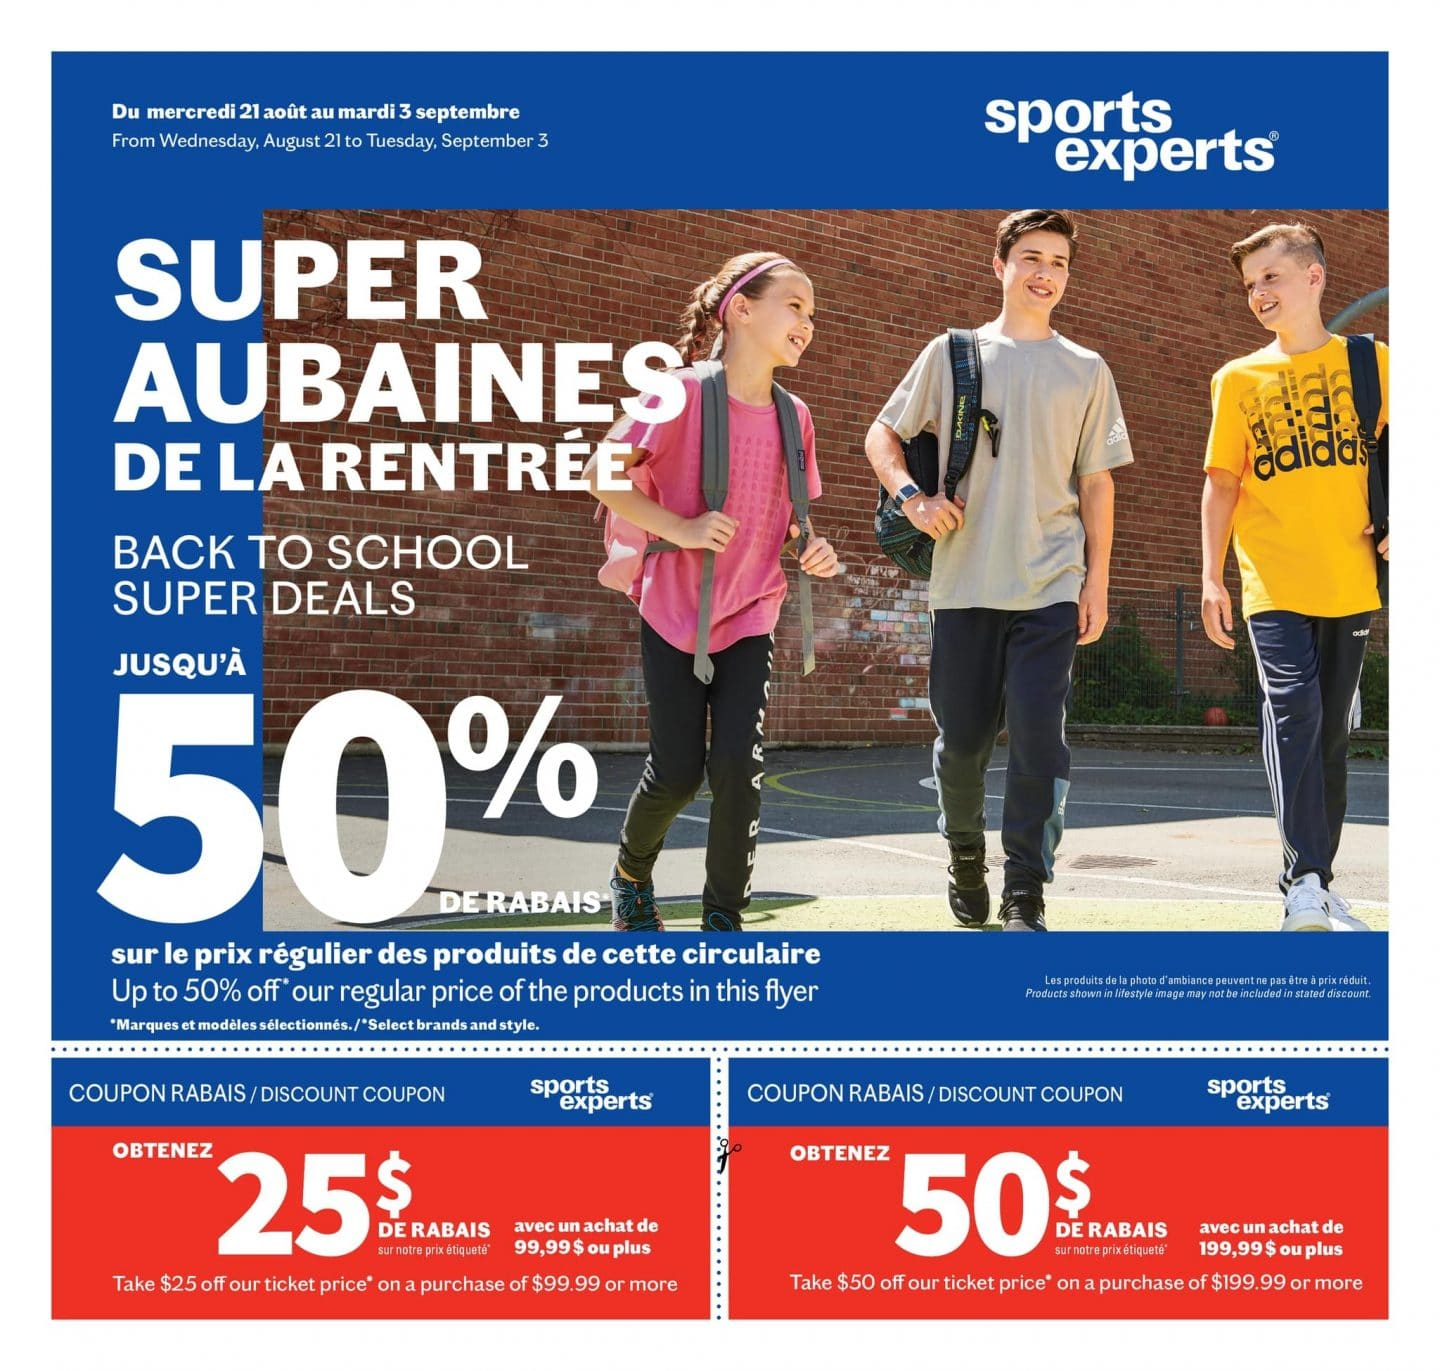 Circulaire Sports Experts 21 août – 3 septembre 2019